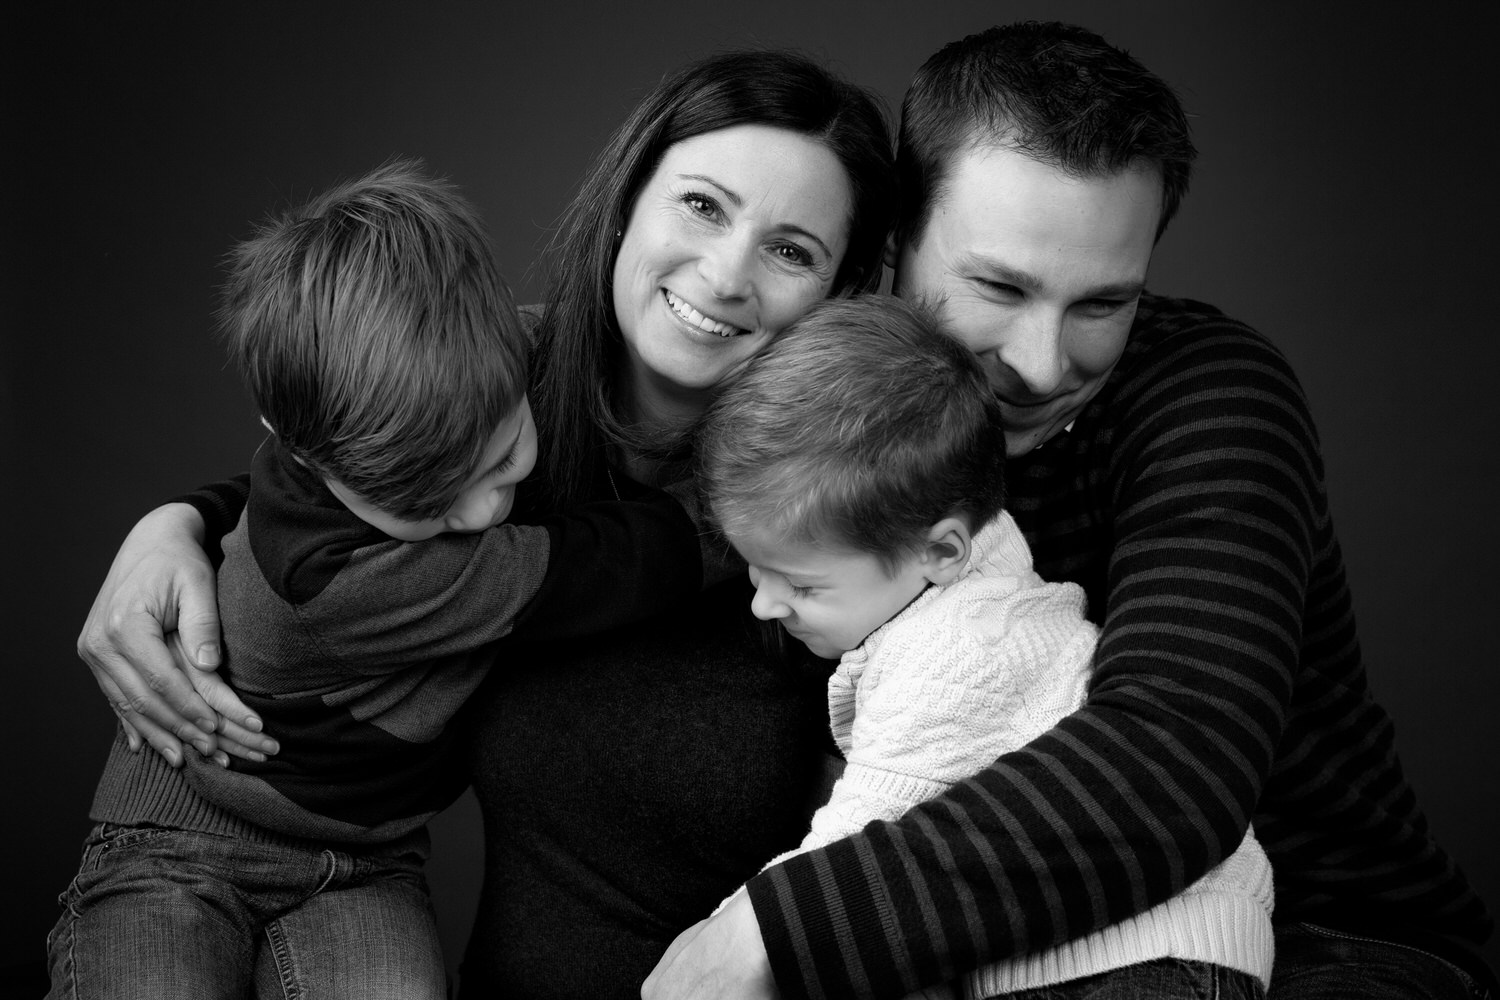 family smiling and loving their connection during a Calgary portrait studio shoot